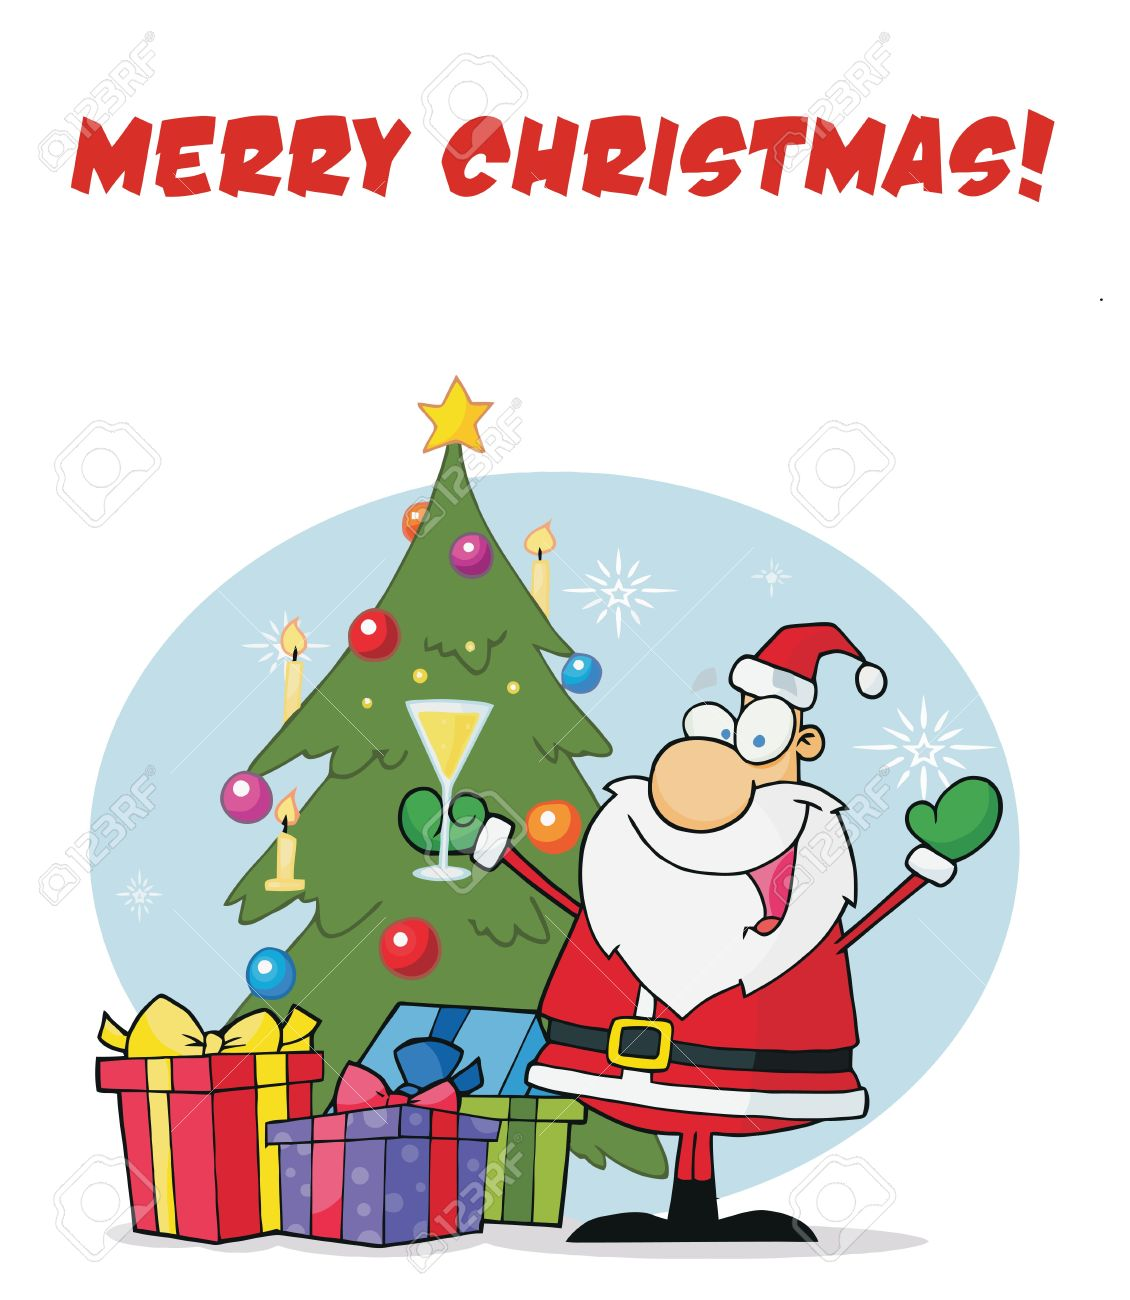 christmas cartoons stock photos royalty free christmas cartoons